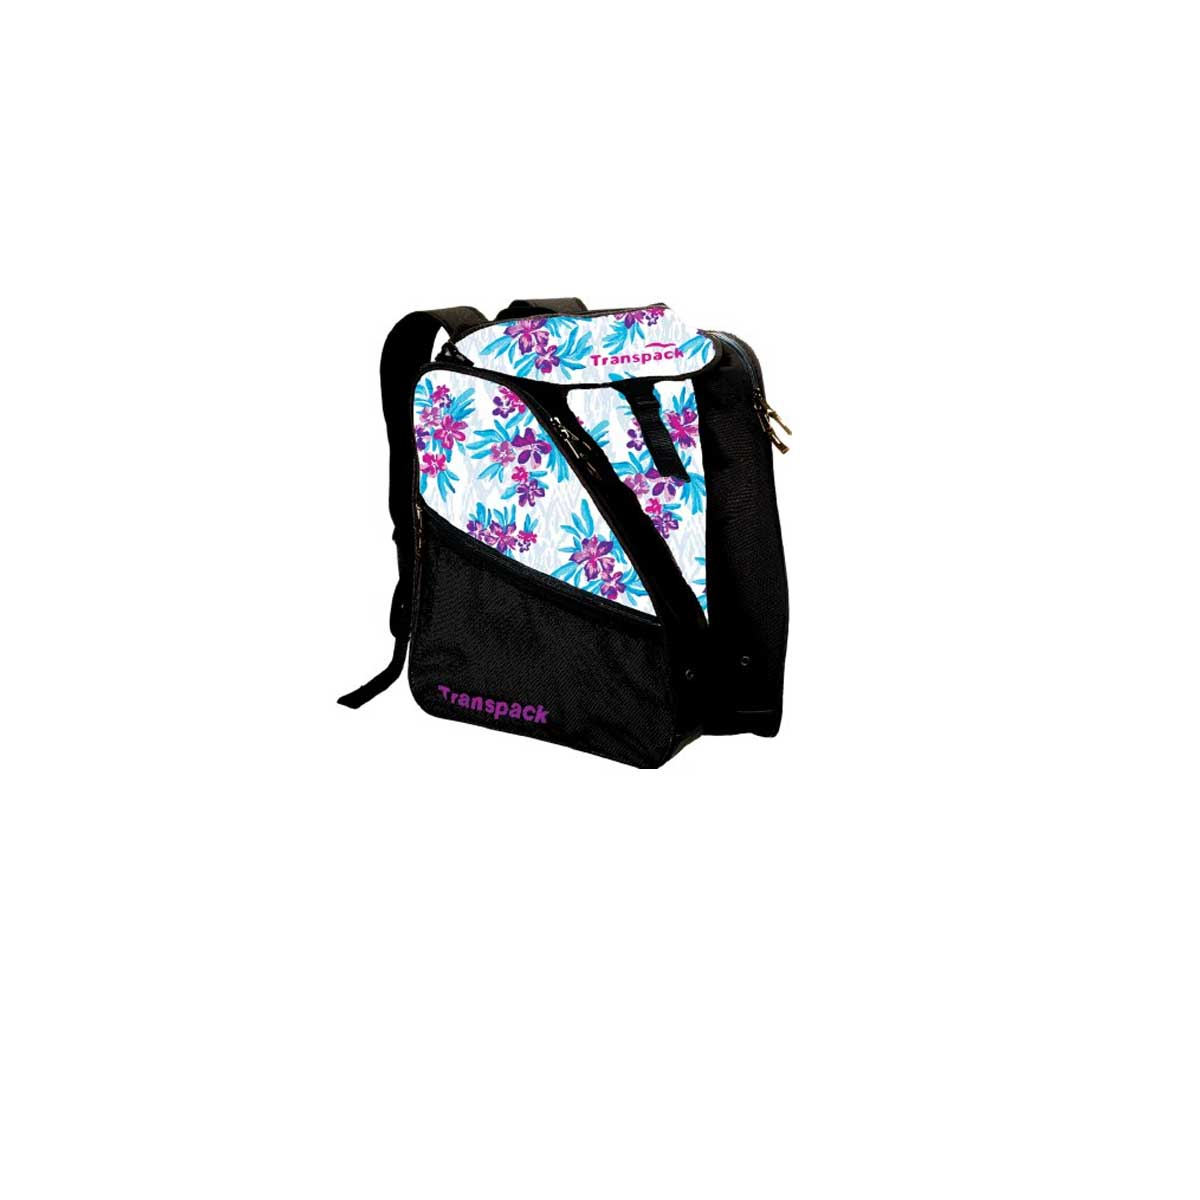 Transpack Women's XTW Print Boot Bag in White Floral Hibiscus